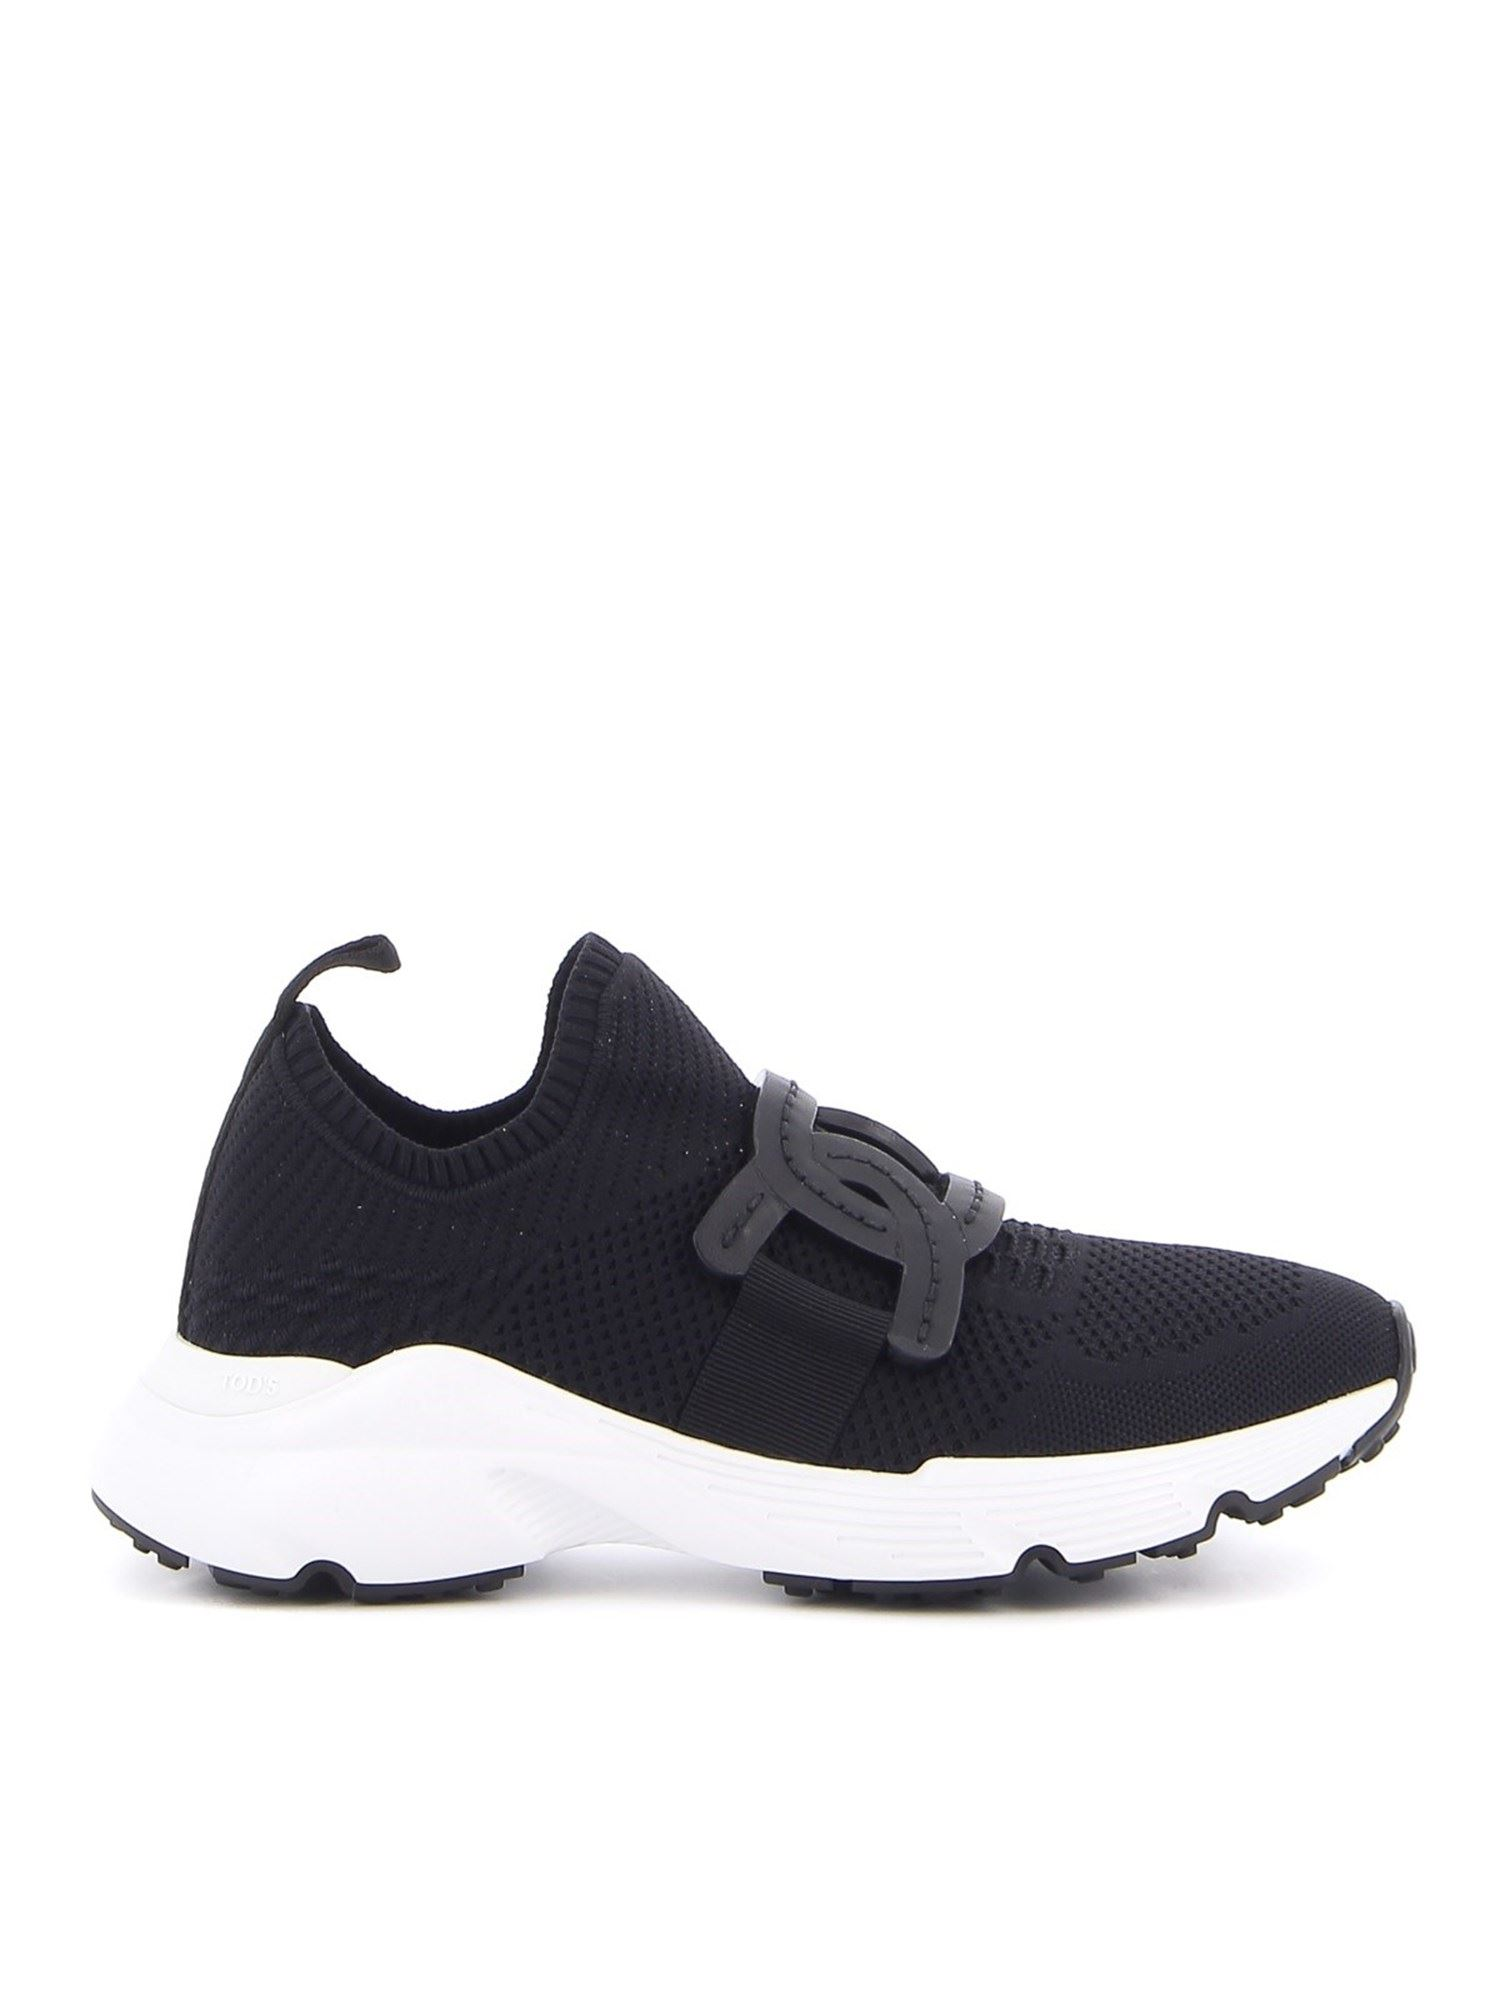 Tod's Leathers TECH FABRIC SLIP ON SNEAKERS IN BLACK